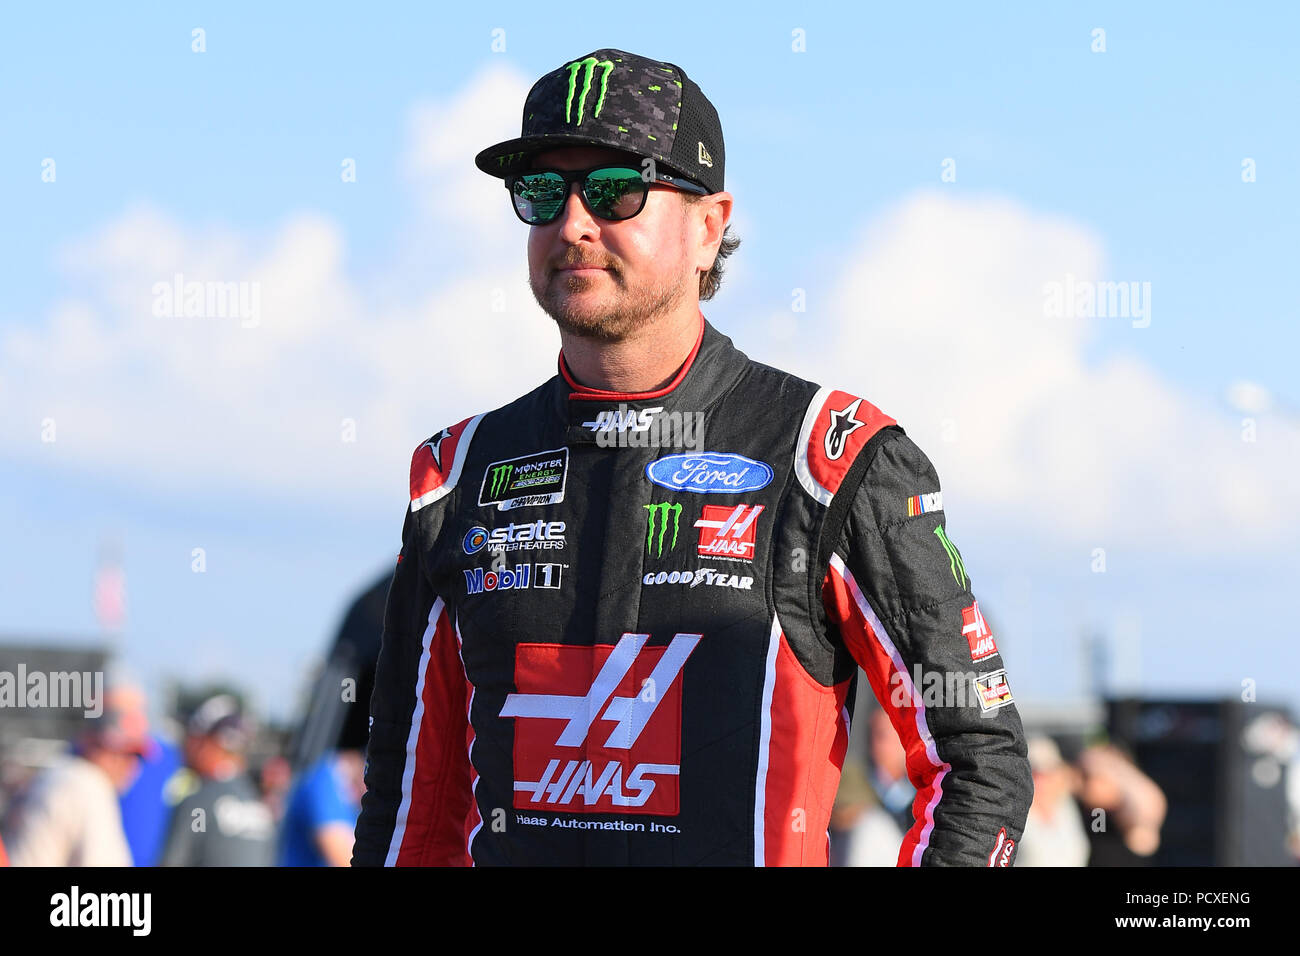 bcdfe230d8 August 5, 2018: Monster Energy NASCAR Cup Series driver Kurt Busch #41  prior to qualifying Monster ...